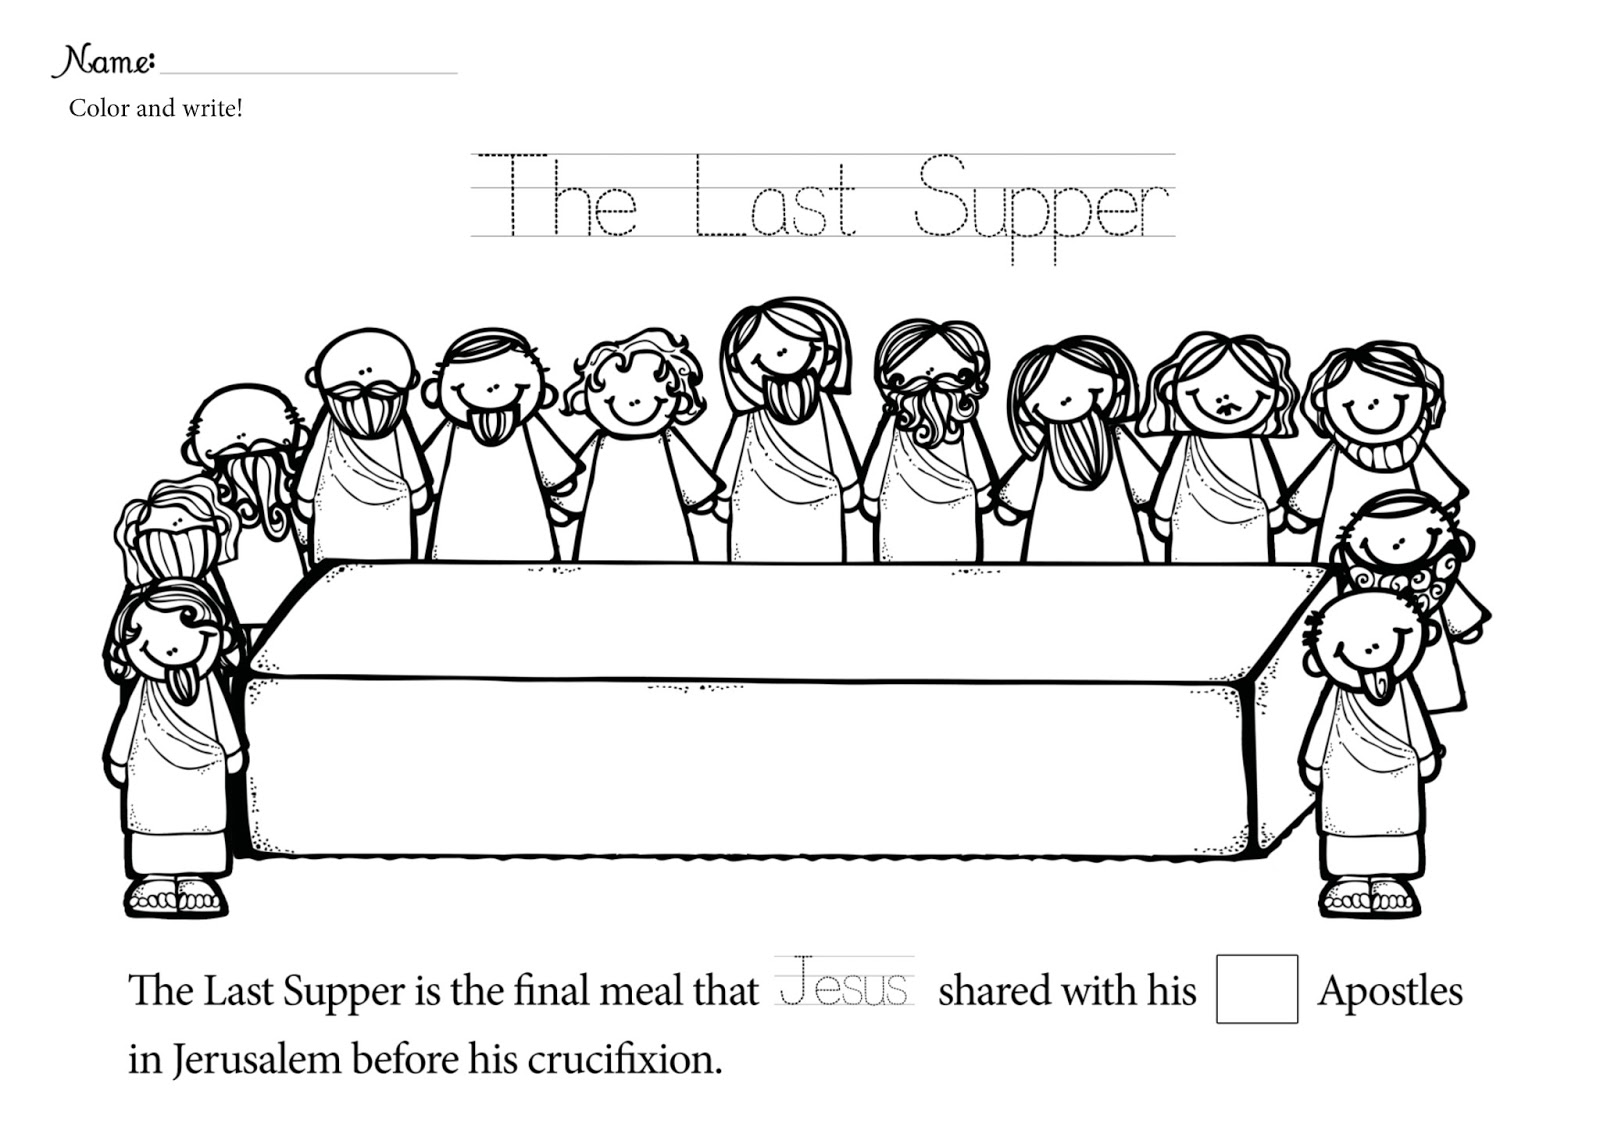 Coloring pages of last supper or apostles ~ The Constant Kindergartener - Teaching Ideas and Resources ...